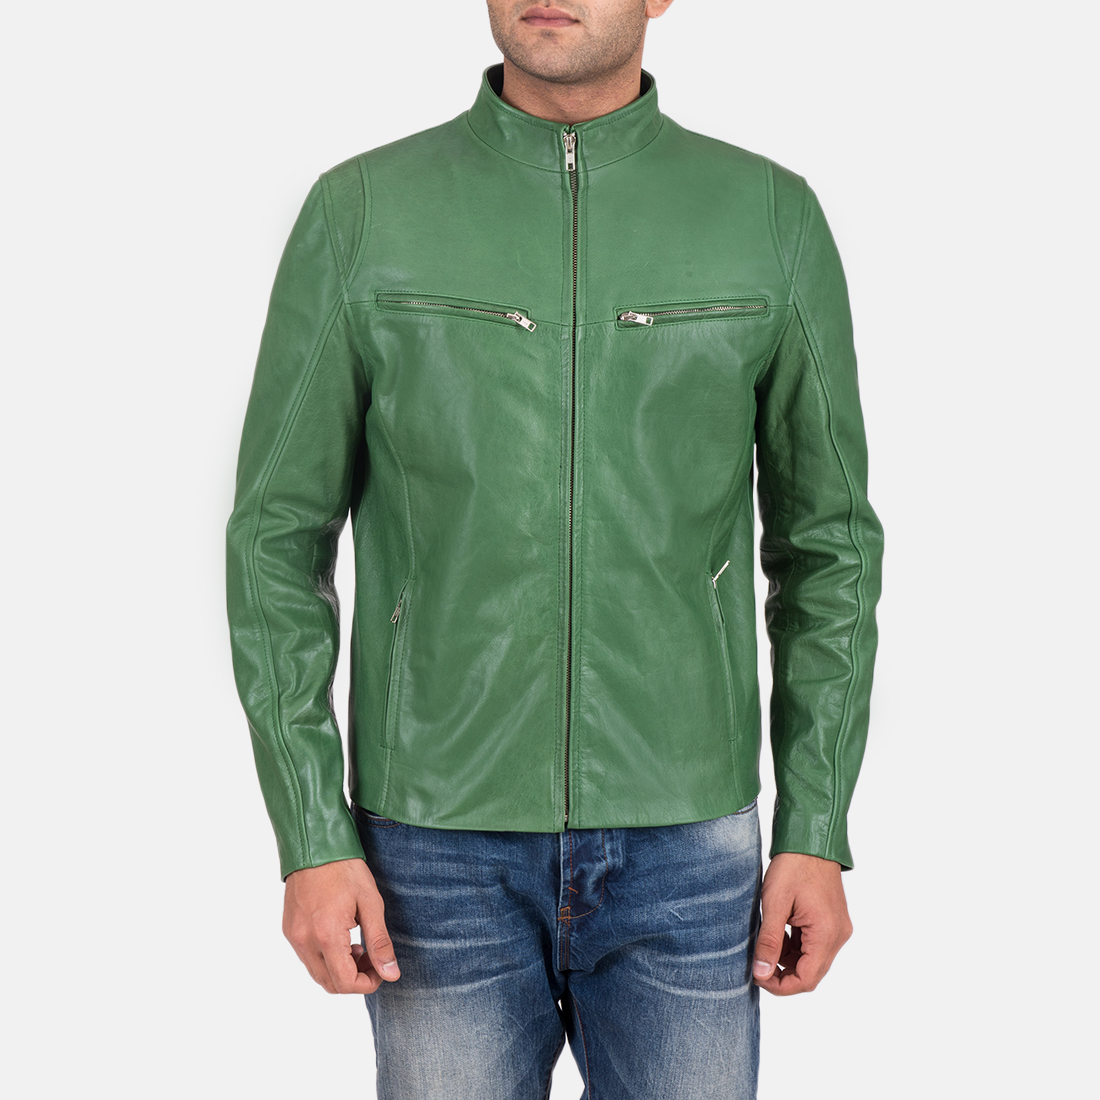 Mens Ionic Green Leather Jacket 1